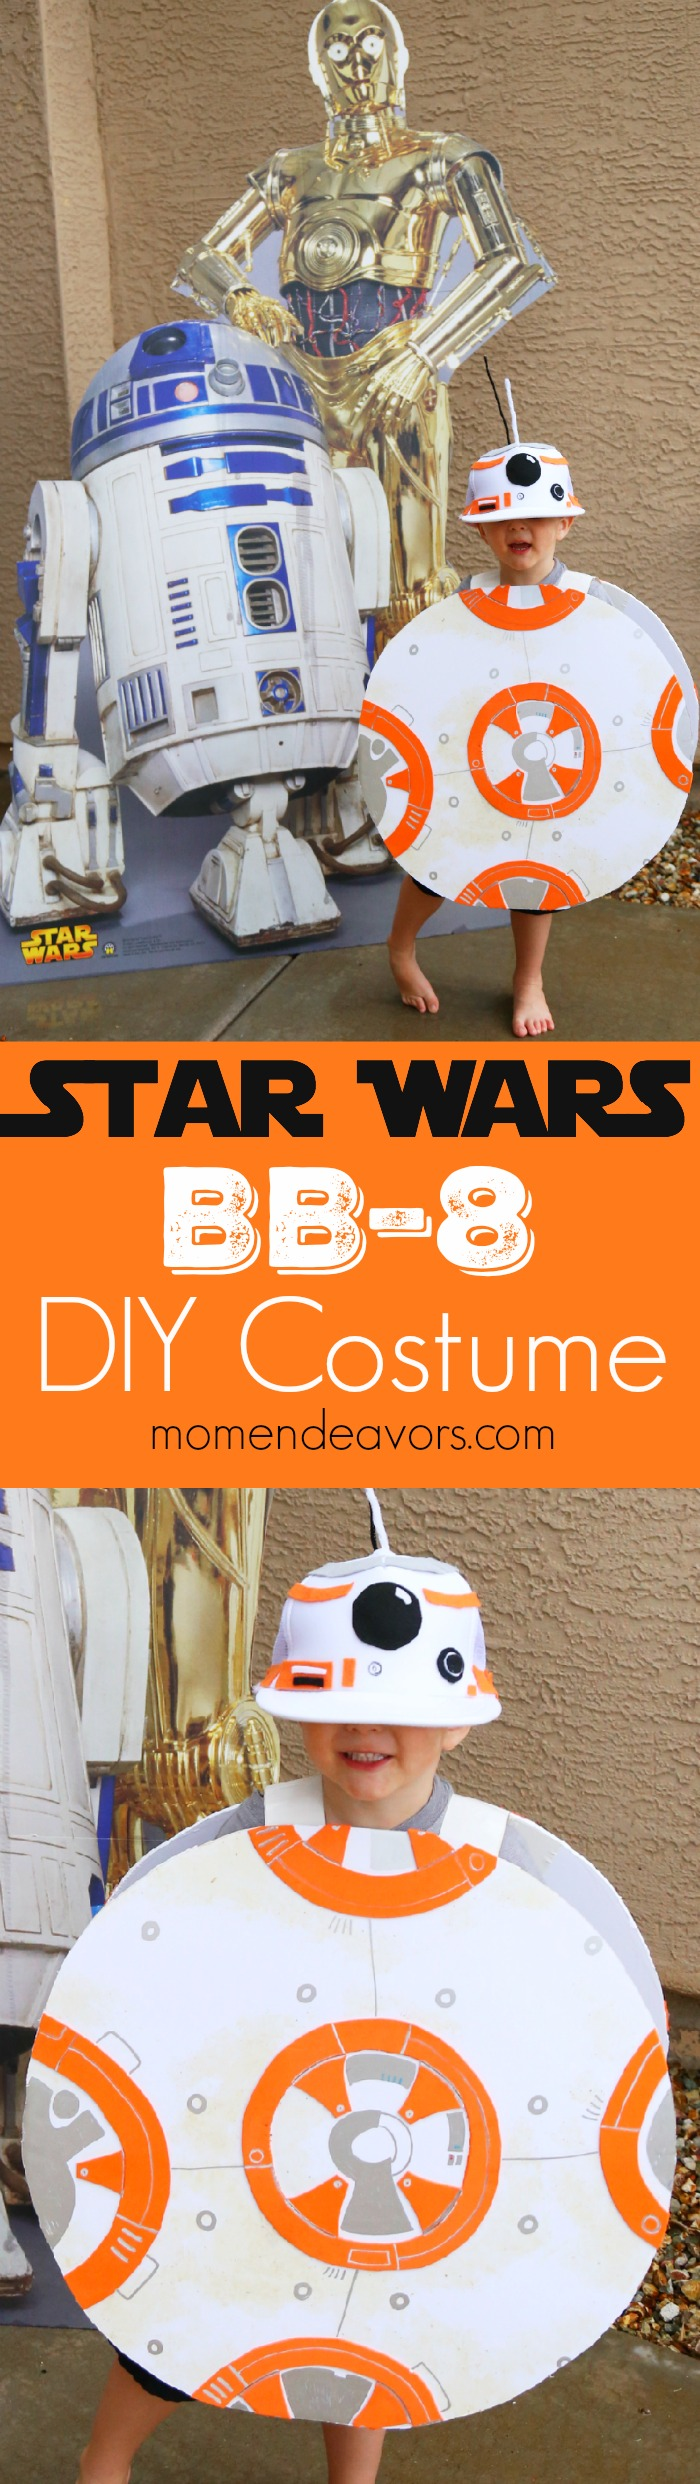 Star Wars BB-8 Easy DIY Costume